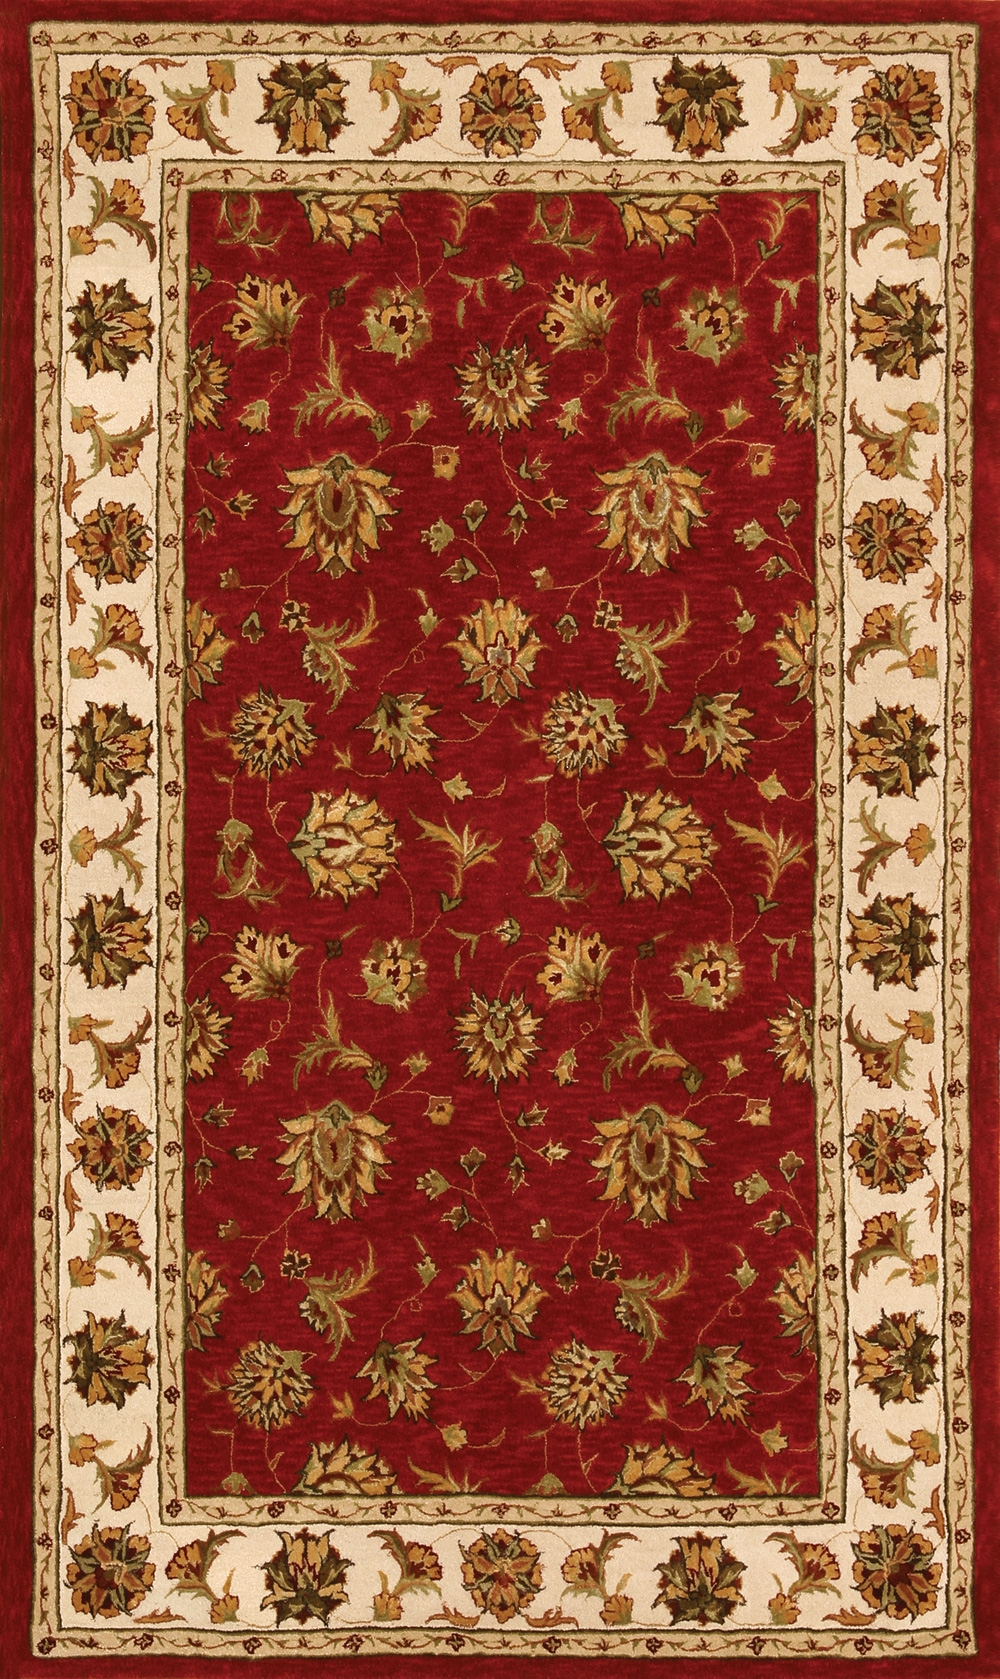 Red Beige 70231 330 Jewel Rug By Dynamic